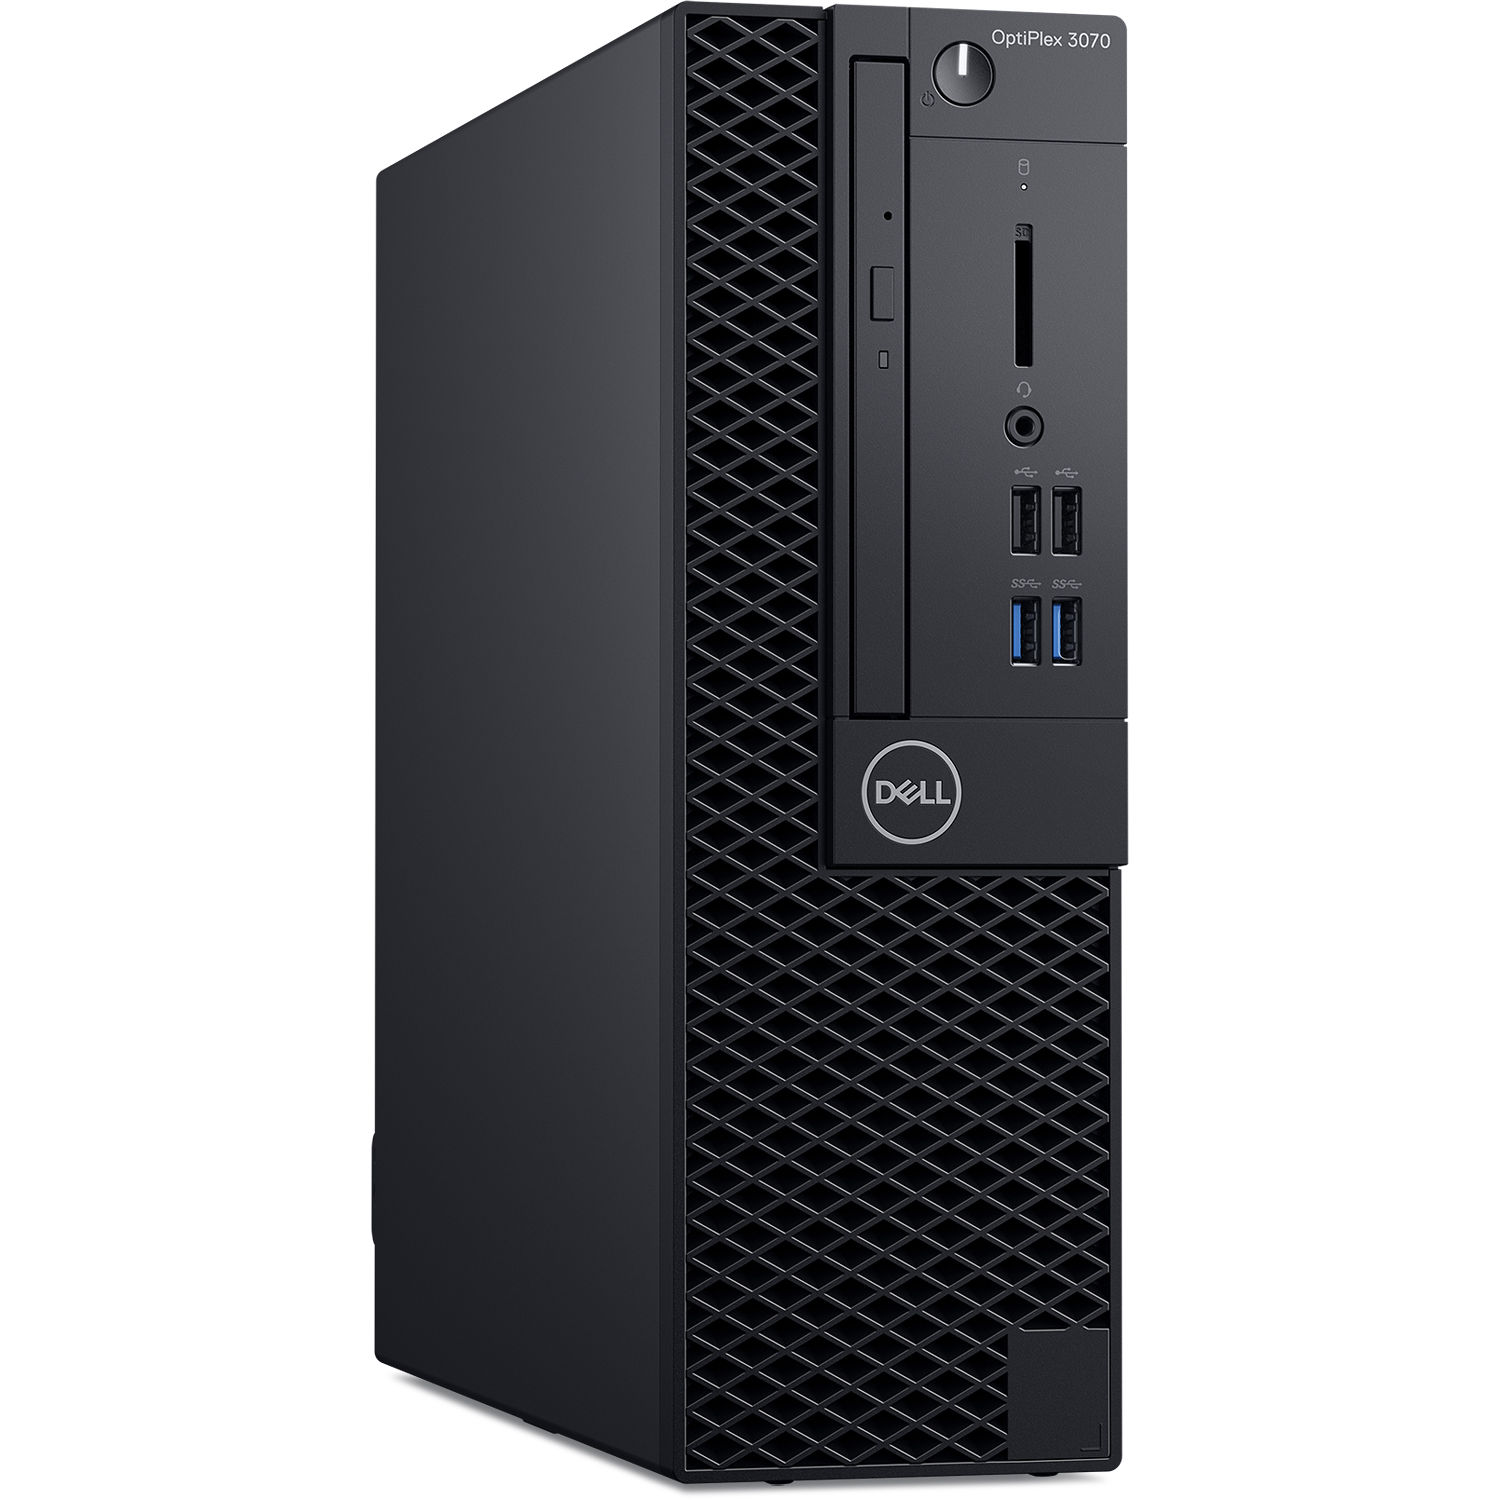 PC Dell OptiPlex 3080SFF (3080SFF-10500-4G1TB)/ Intel Core i5-10500 (3.10GHz, 12MB)/ Ram 4GB DDR4/ HDD 1TB/ Intel UHD Graphics/ DVDRW/ Fedora/ 1Yr